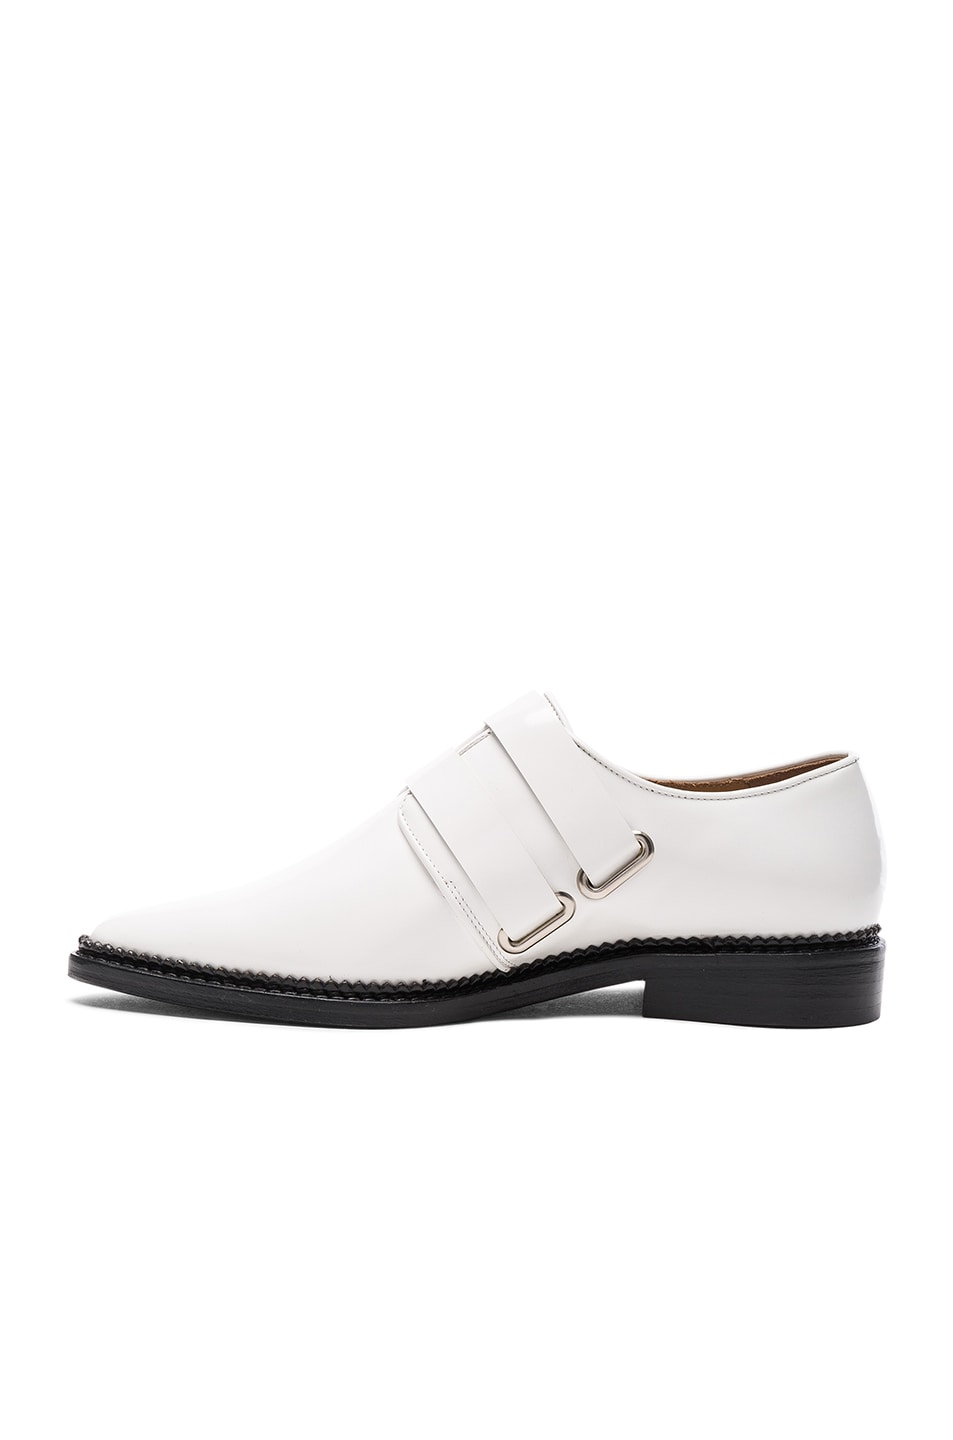 Image 5 of TOGA PULLA Leather Oxfords in White Polido